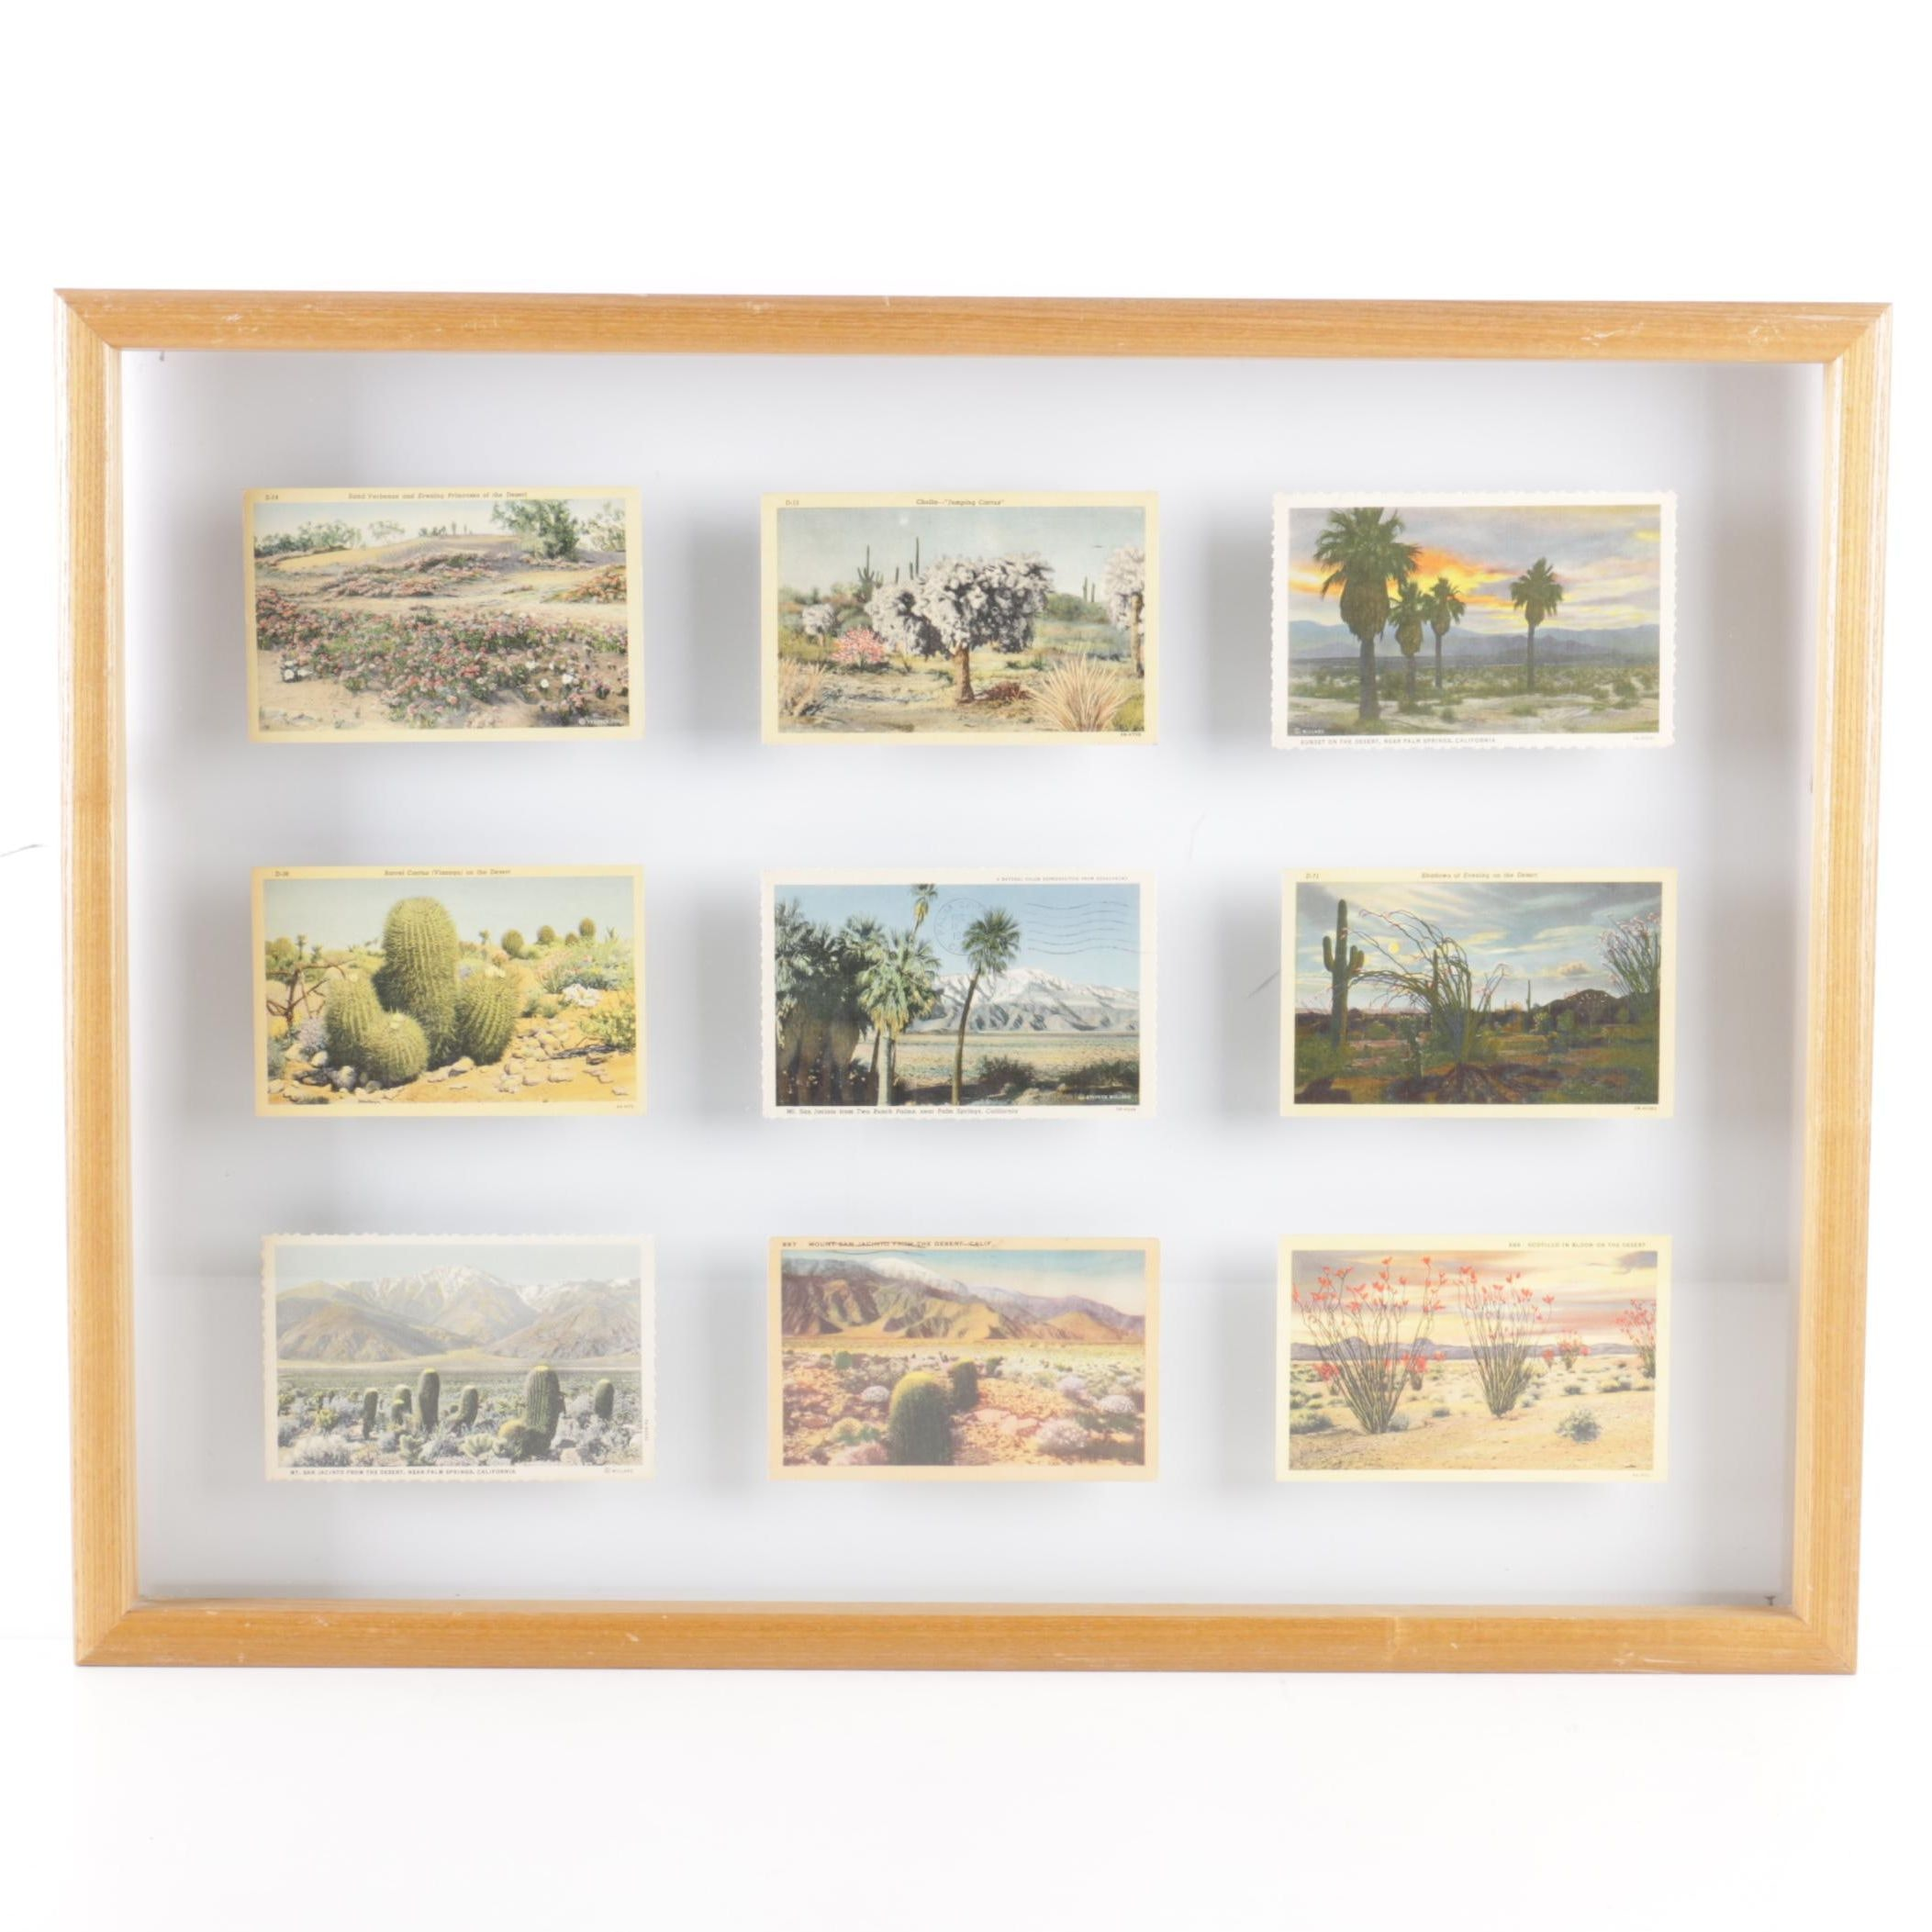 Circa 1940s Mounted Postcards of the California Deserts